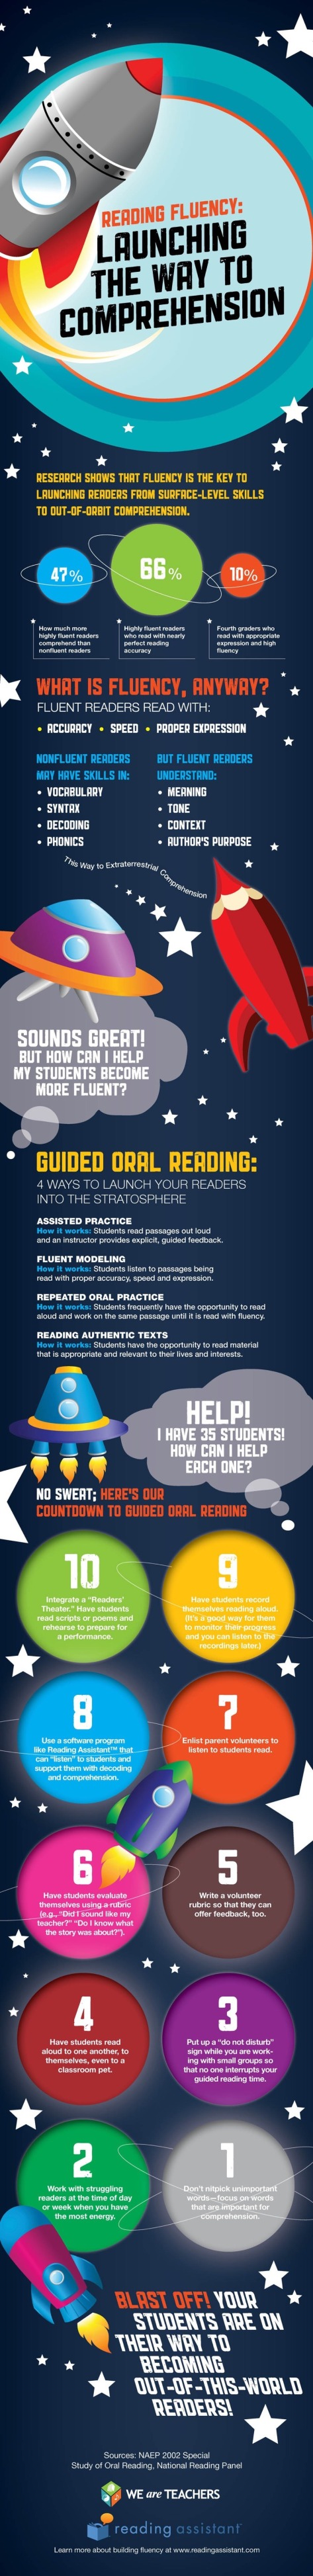 Tips-improving-reading-fluency-full-infographic